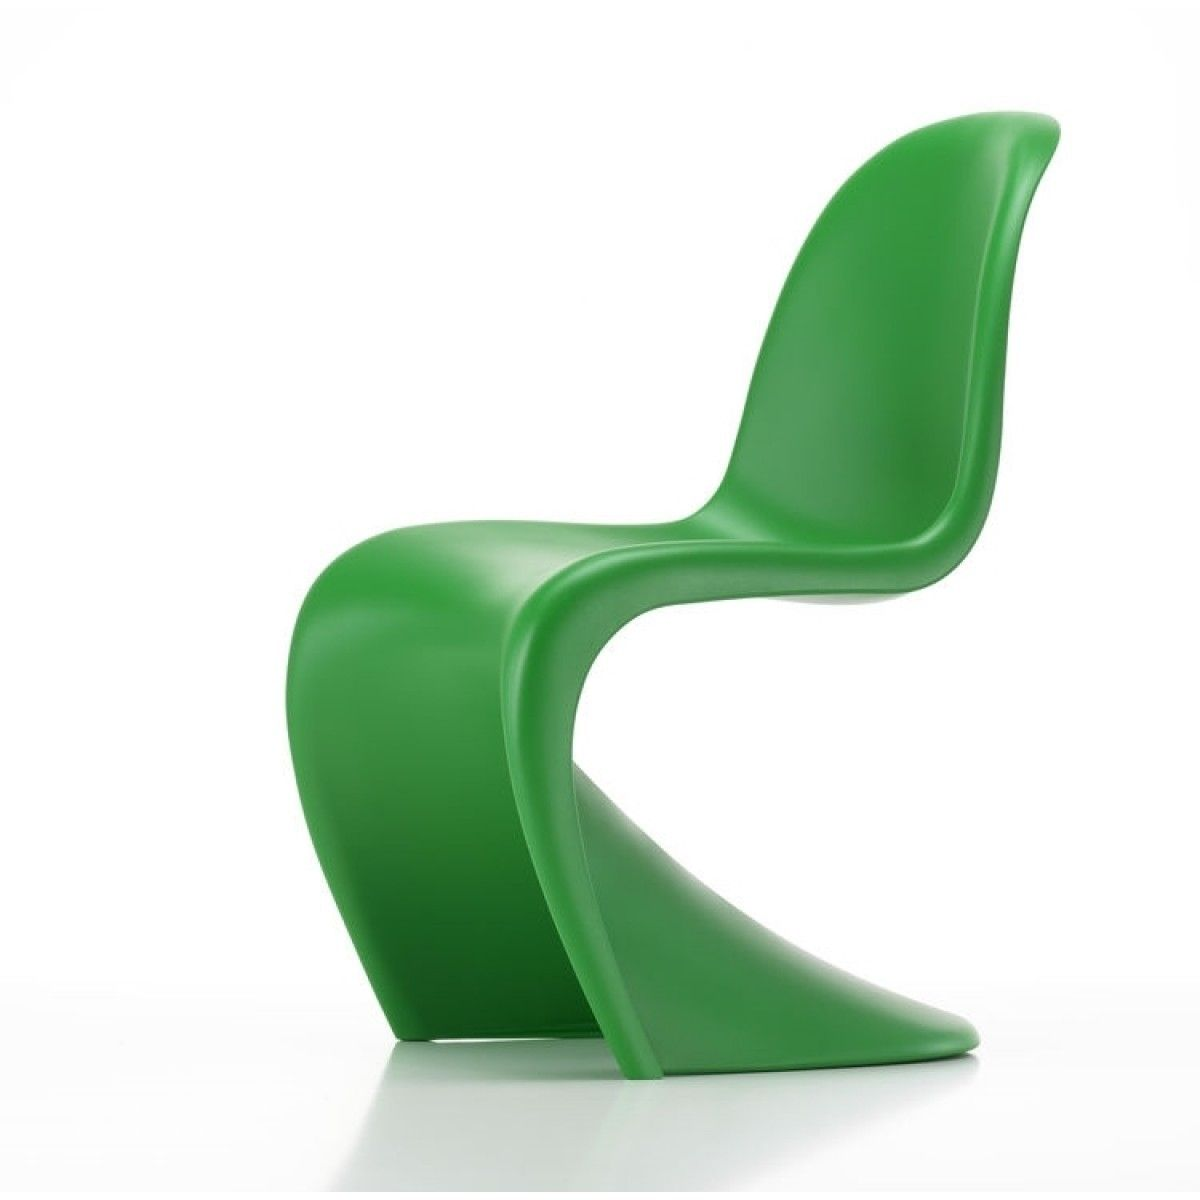 Special Edition Vitra Panton Chair Summer Green Panton Chair Green Chair Round Wicker Chair